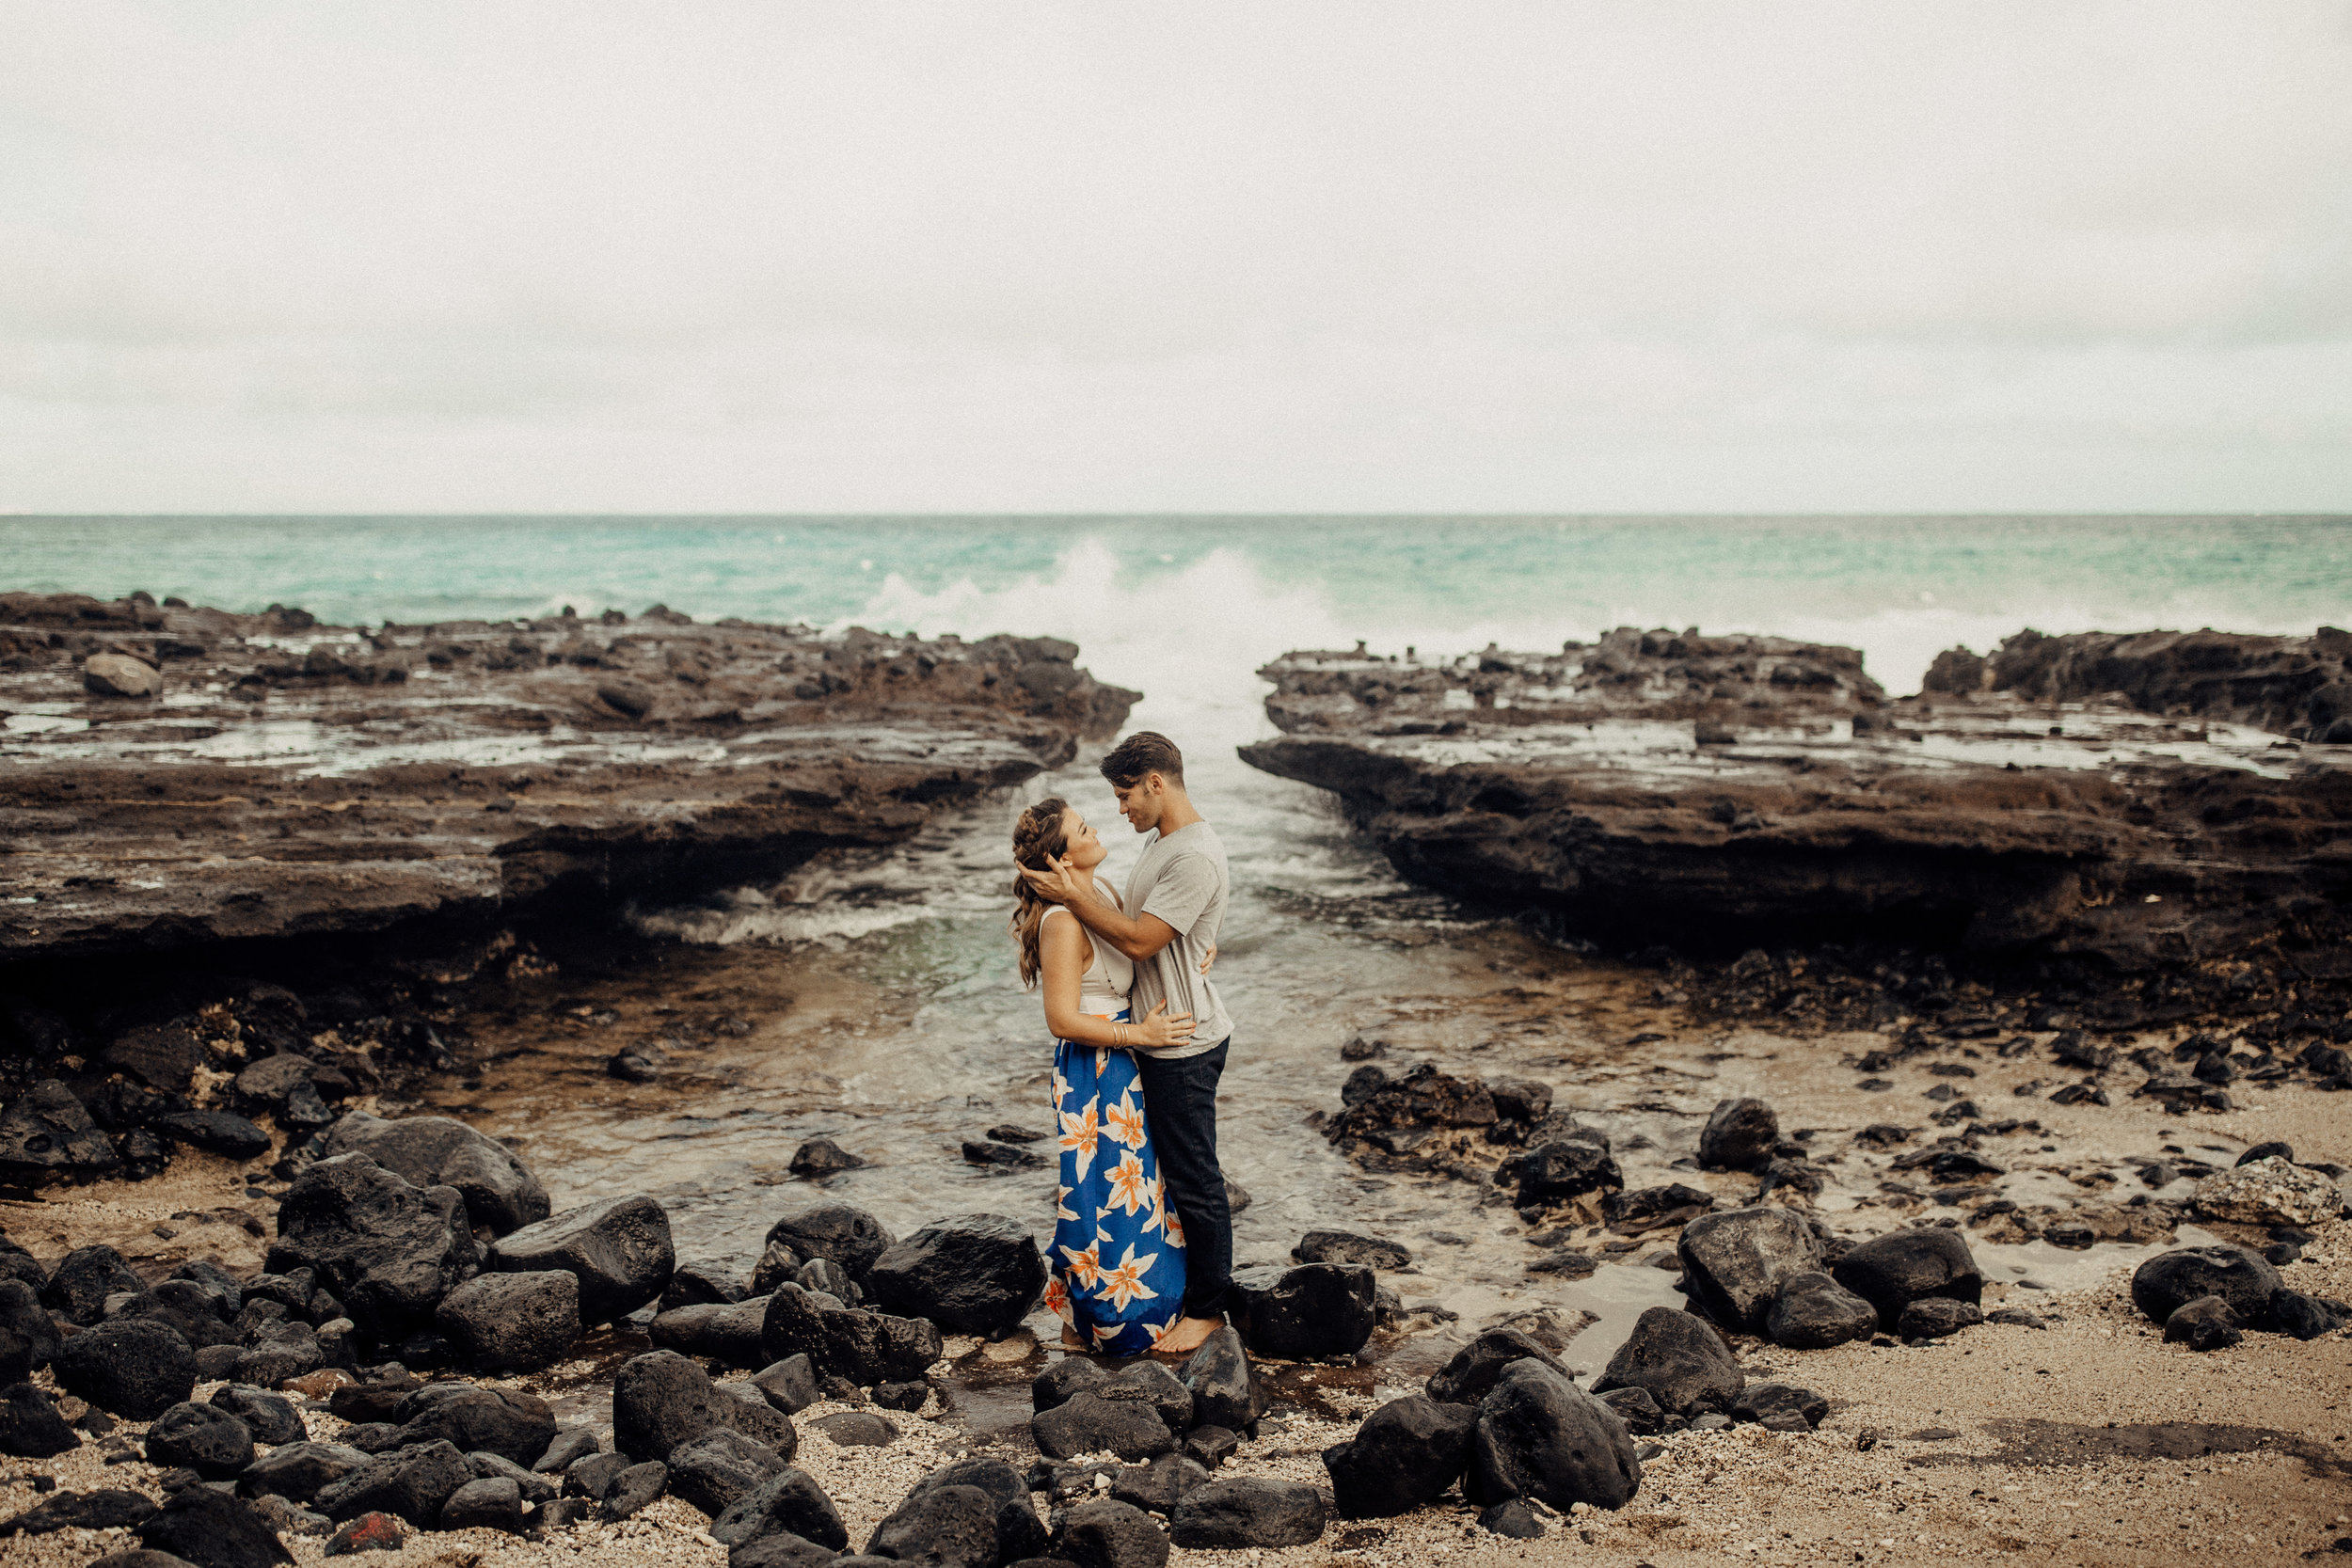 honolulu-wedding-photographer-93.jpg